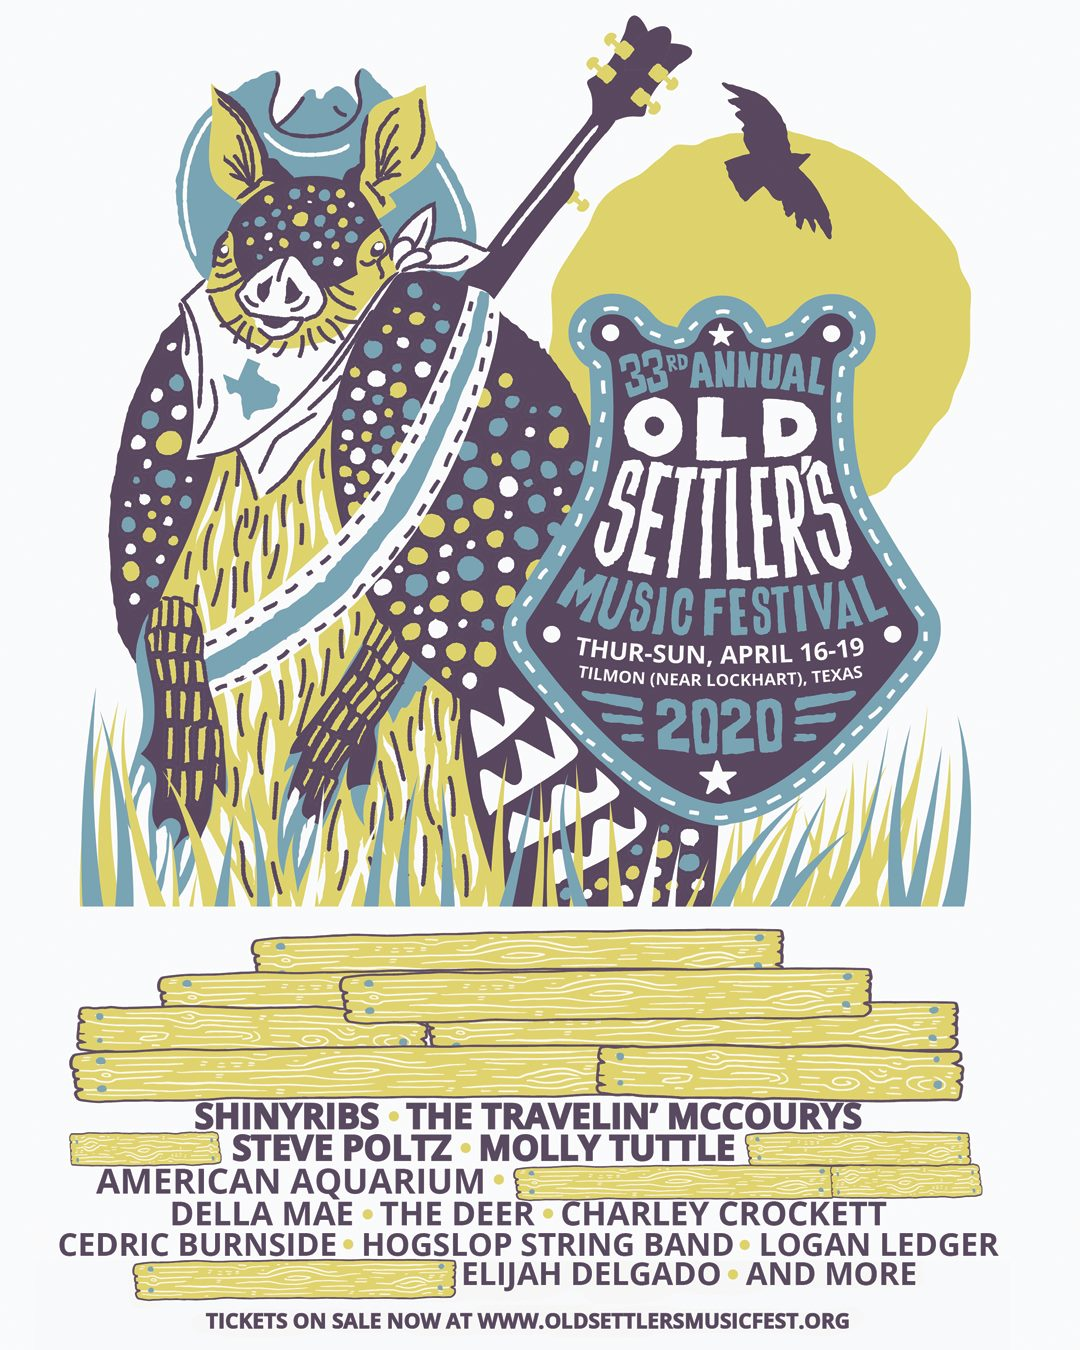 Old Settlers Country Music Festival 2020 - Best USA Country Music Festivals